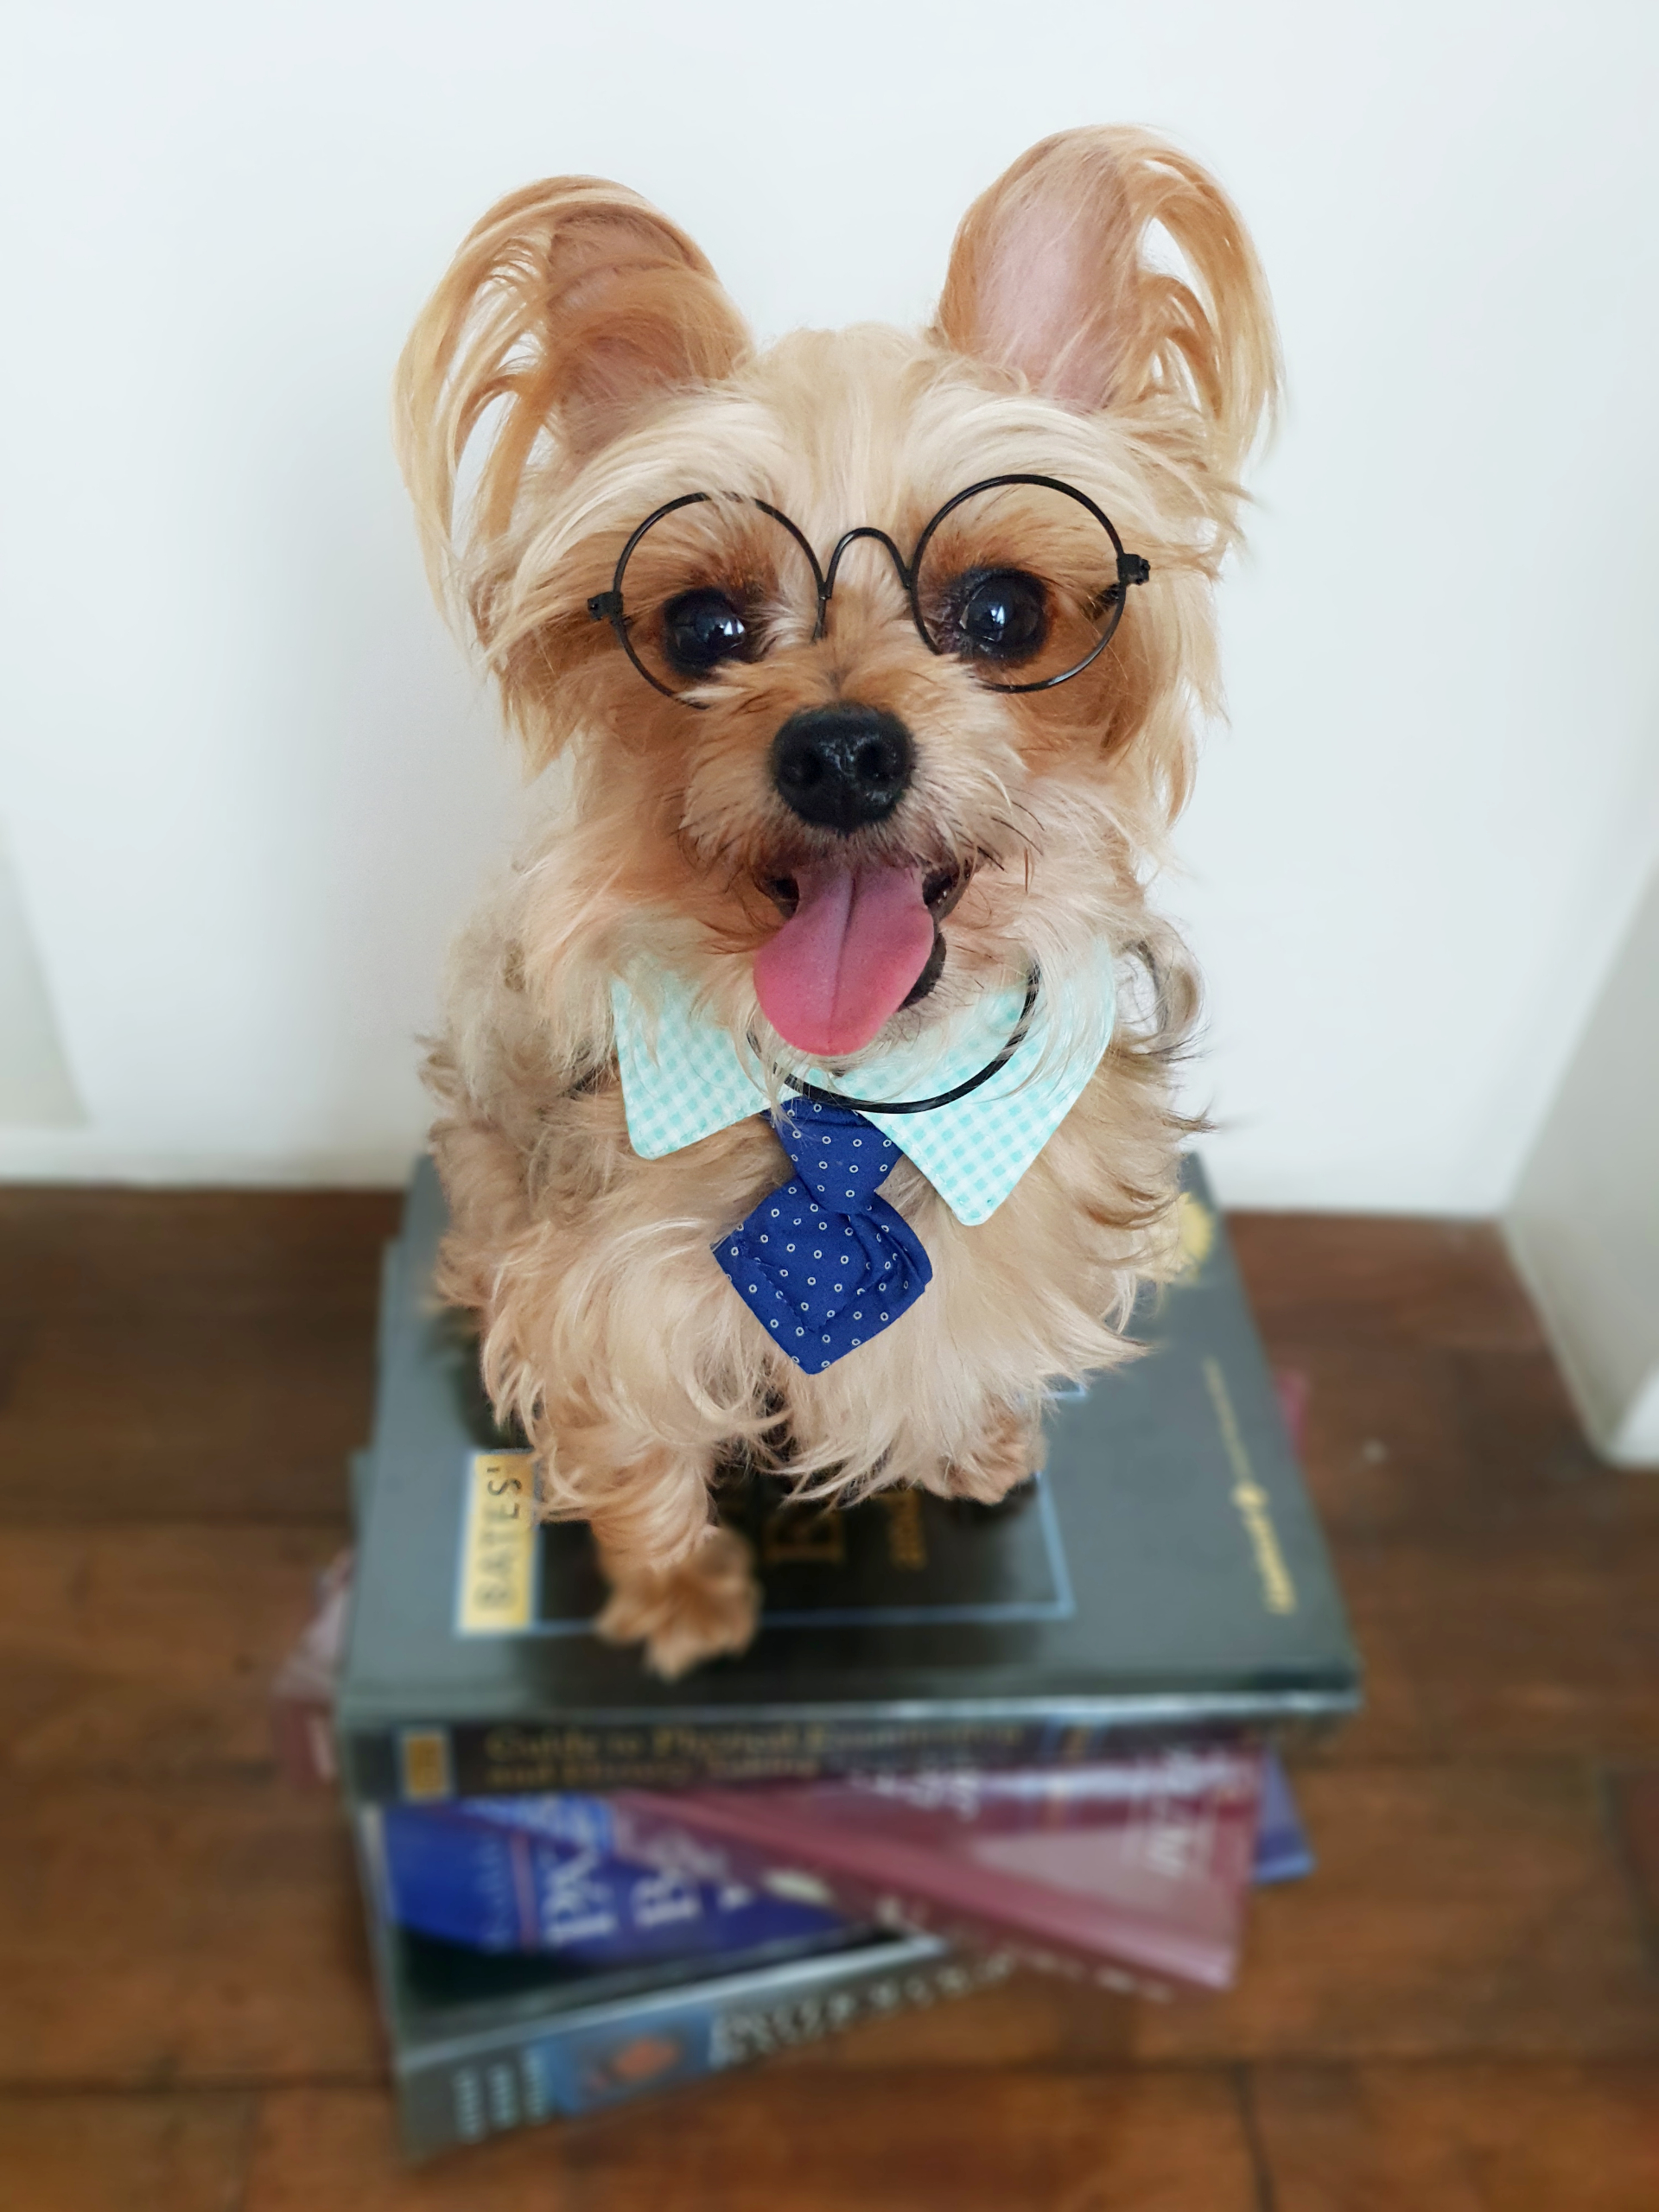 Therapy Dog - Smith the Yorkie